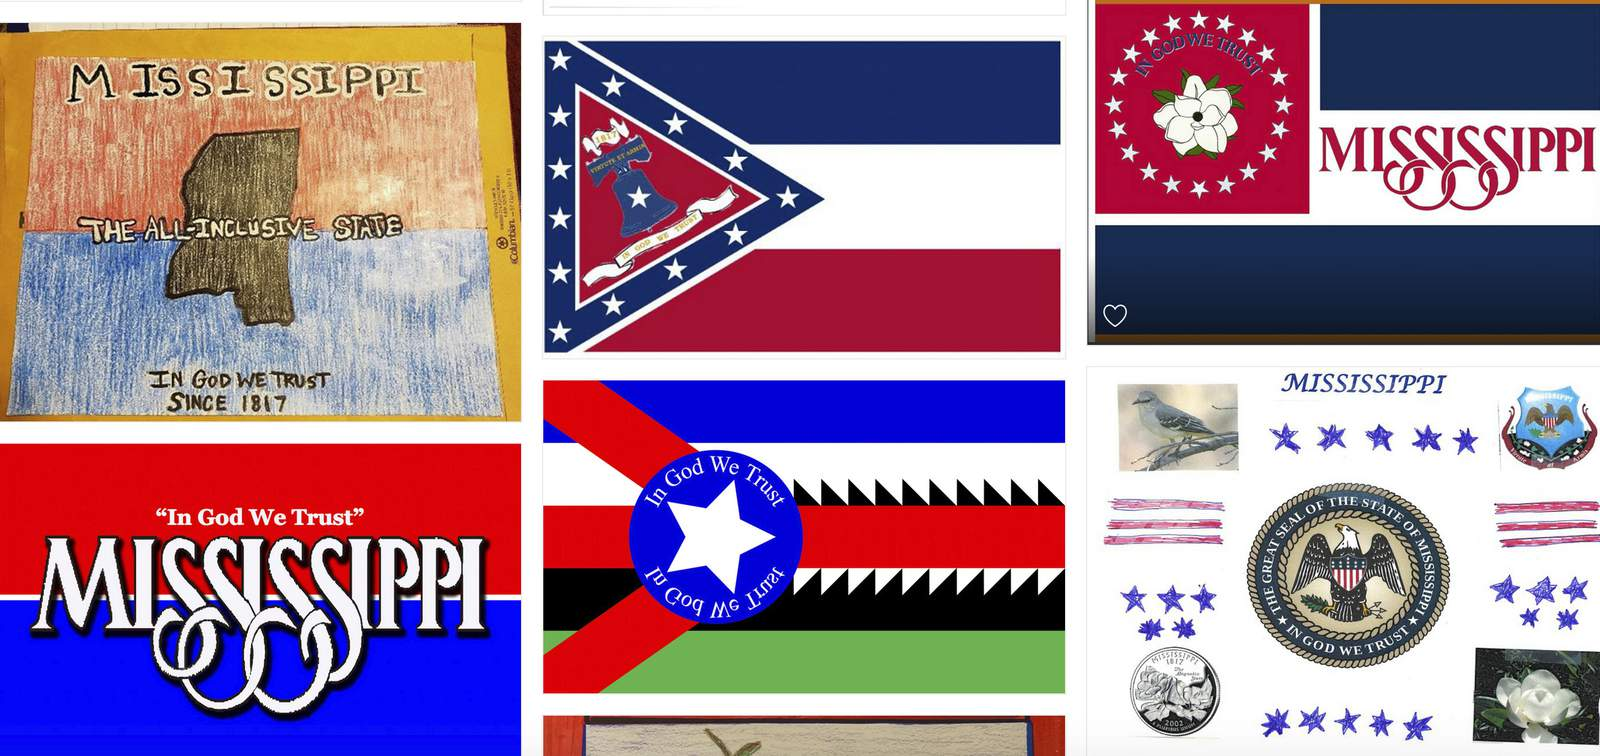 Creator of mosquito-themed state flag says design was a joke